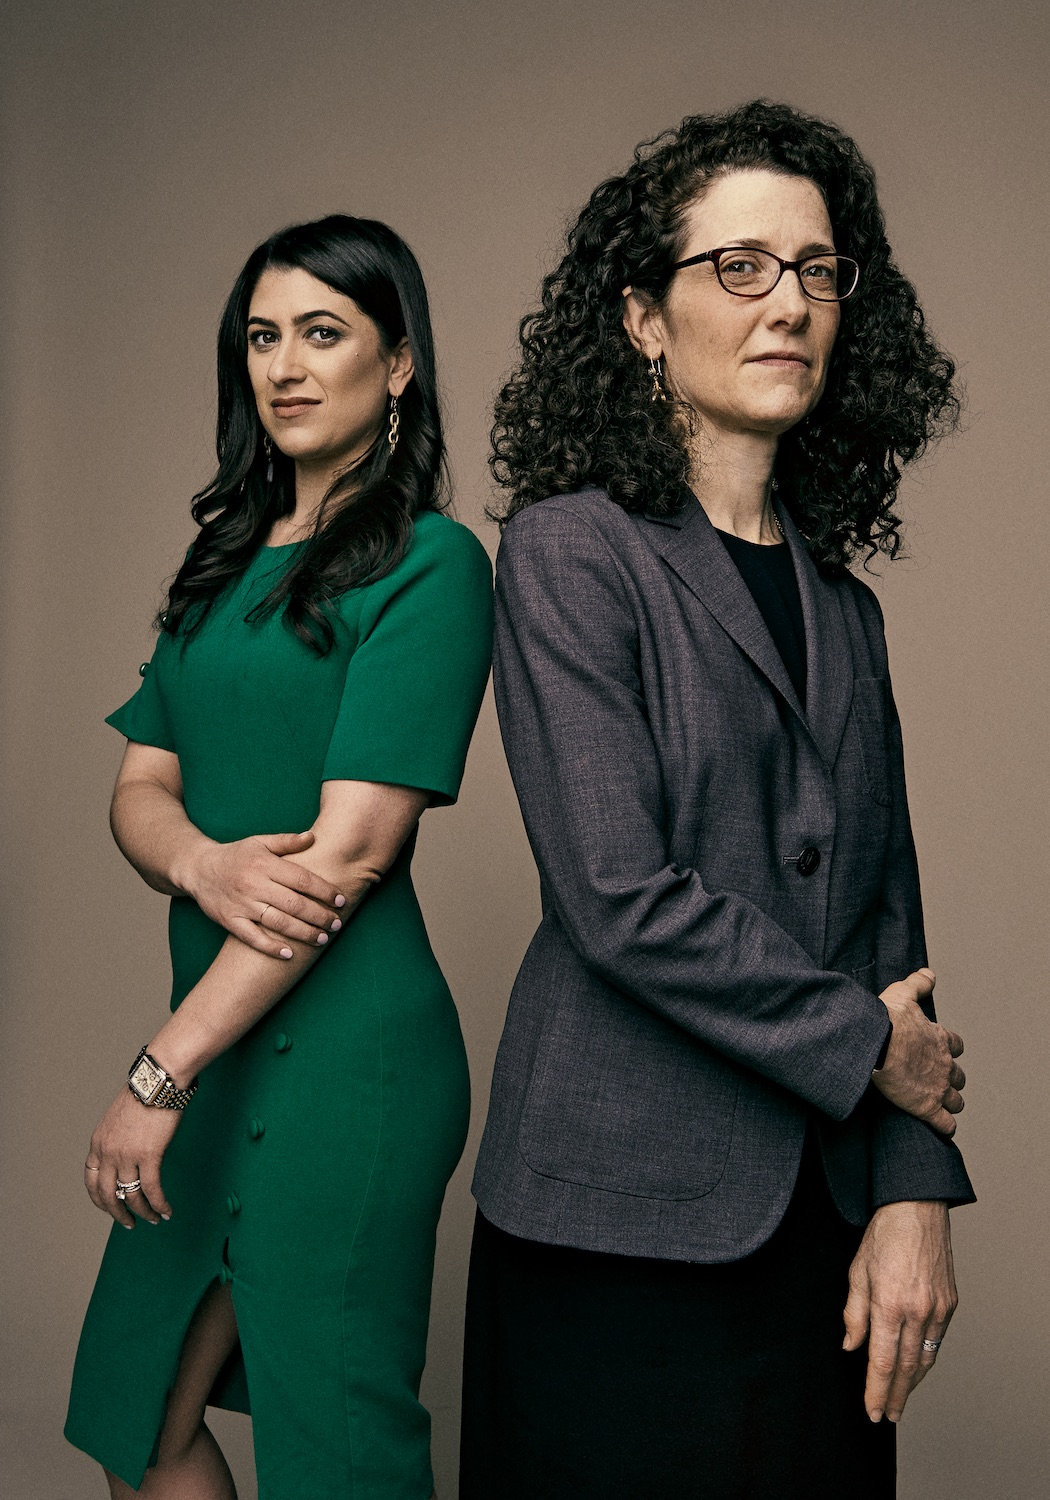 Danna DeBlasio (left) and Jacqueline Sherman (right)